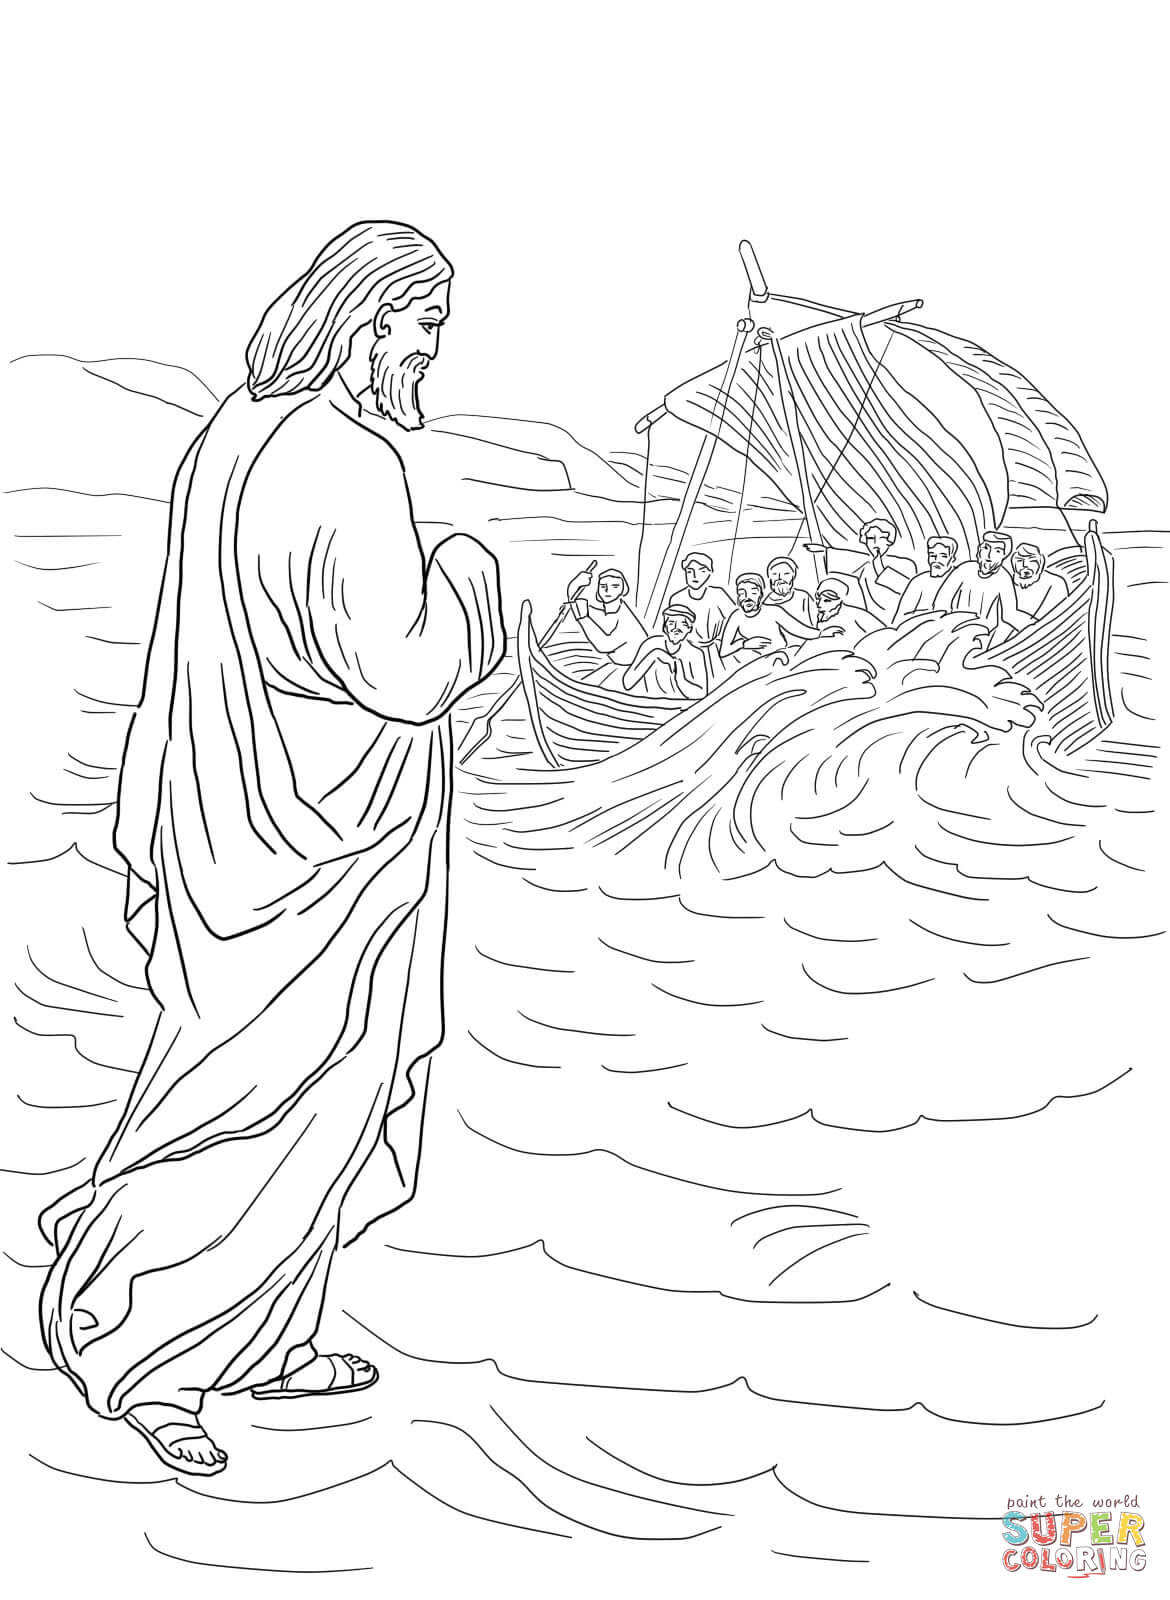 Jesus Walking On The Water Coloring Page Free Printable Coloring Pages